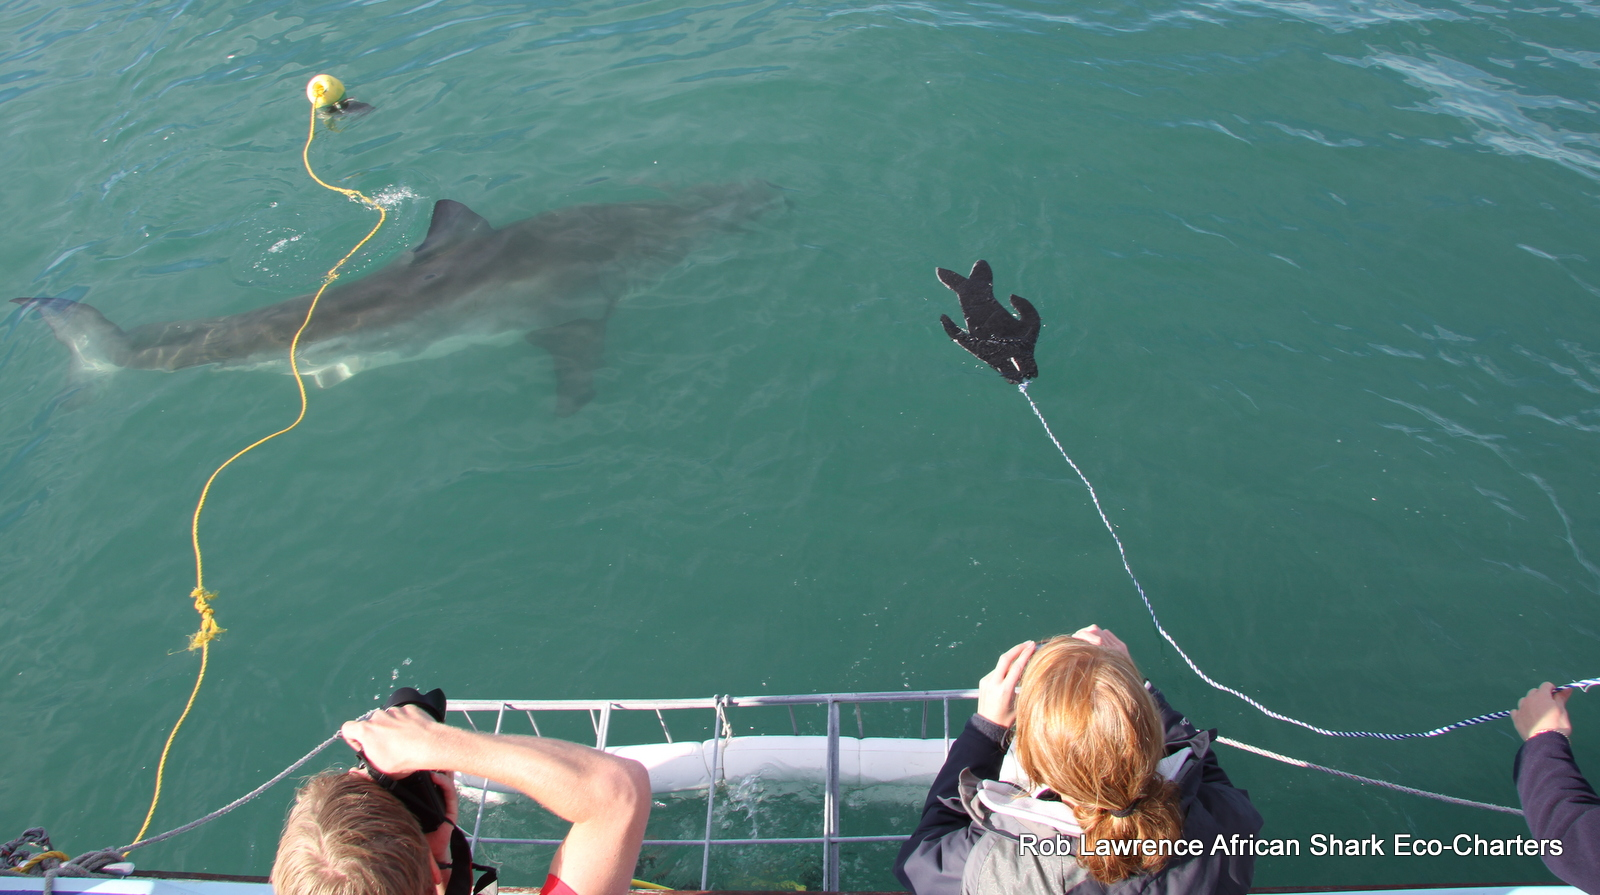 Cage diving with African Shark Eco-Charters